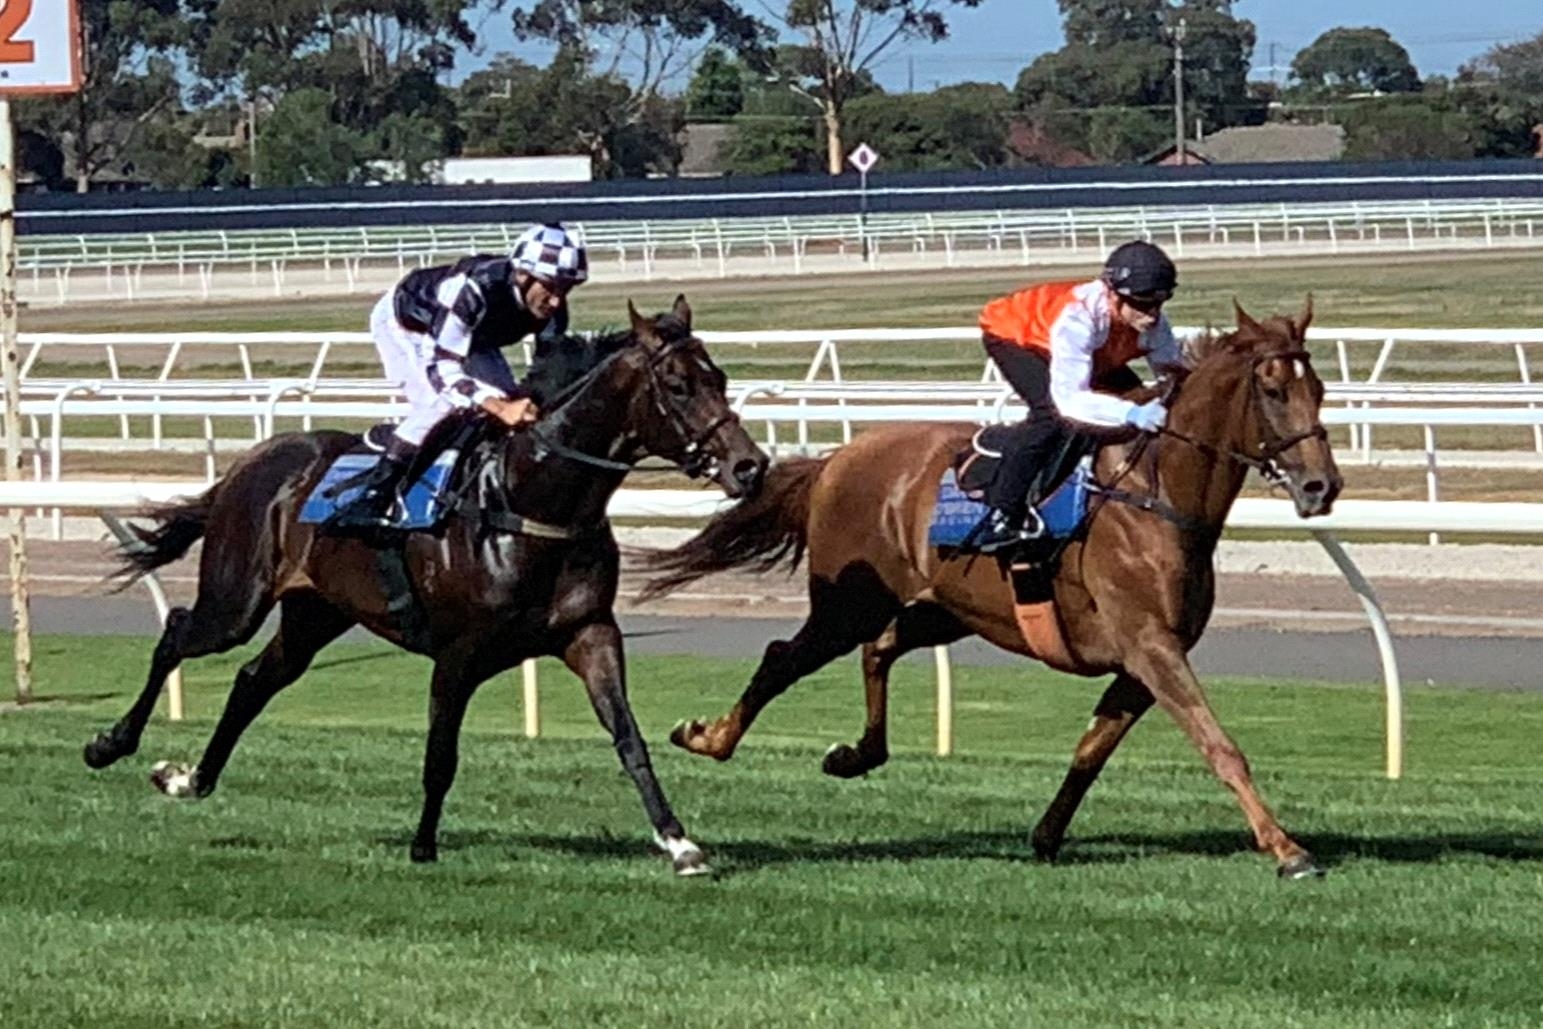 Vow And Declare (orange silks) leads his stablemate Russian Camelot in a gallop at Geelong.